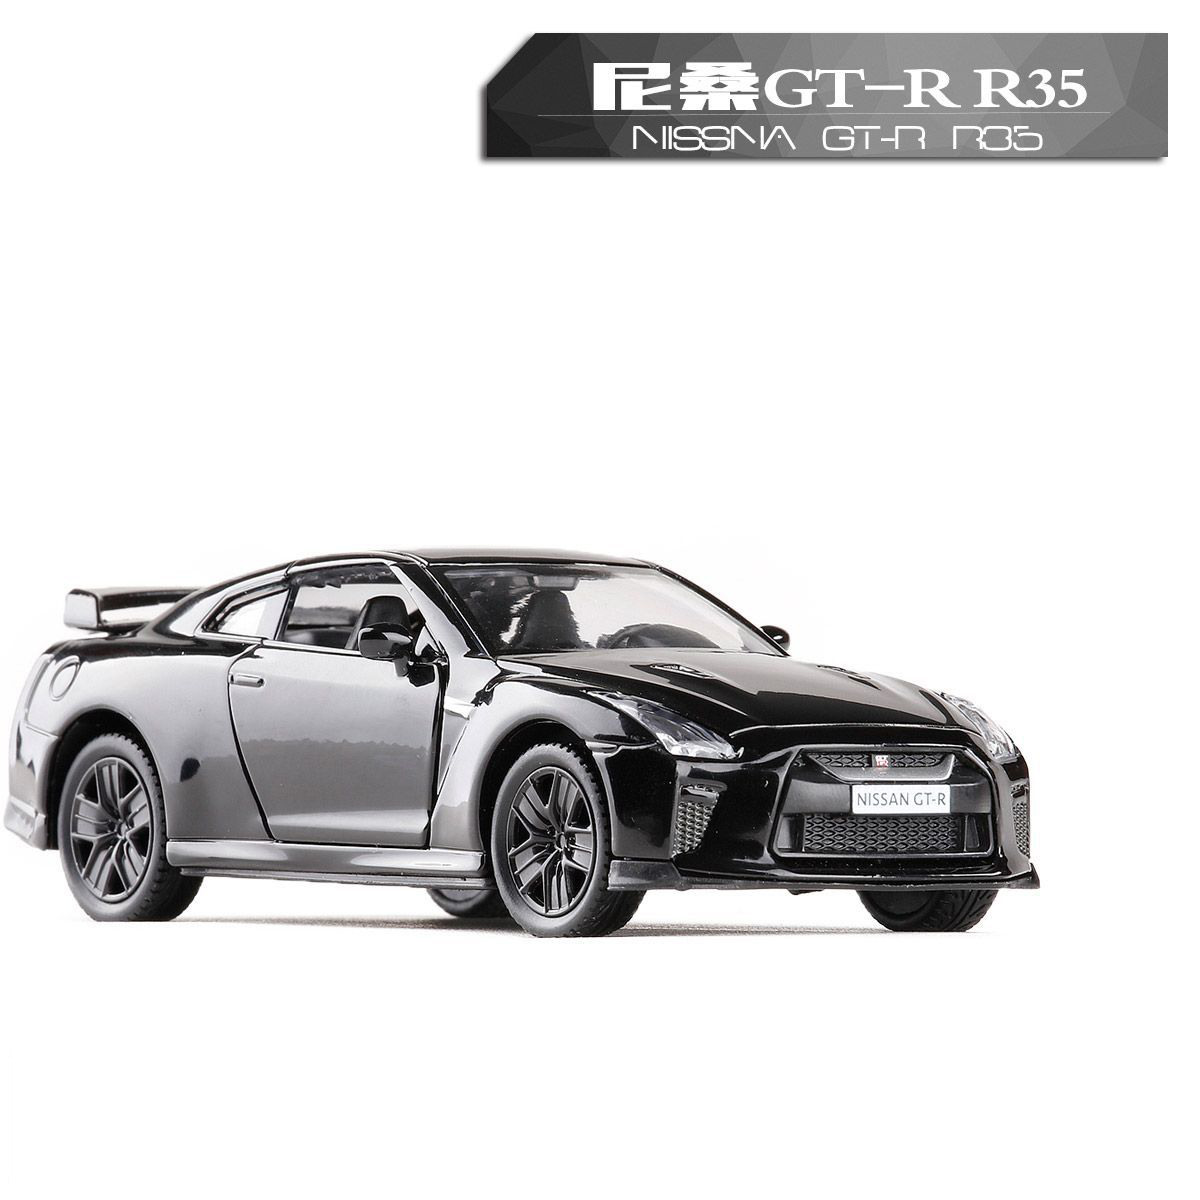 High Simulation 1:36 RMZ City GT-R R35 Alloy Diecast Models Car Toys Pull Back Cars Toy Sports Car Vehicle For Kids Toy Gifts